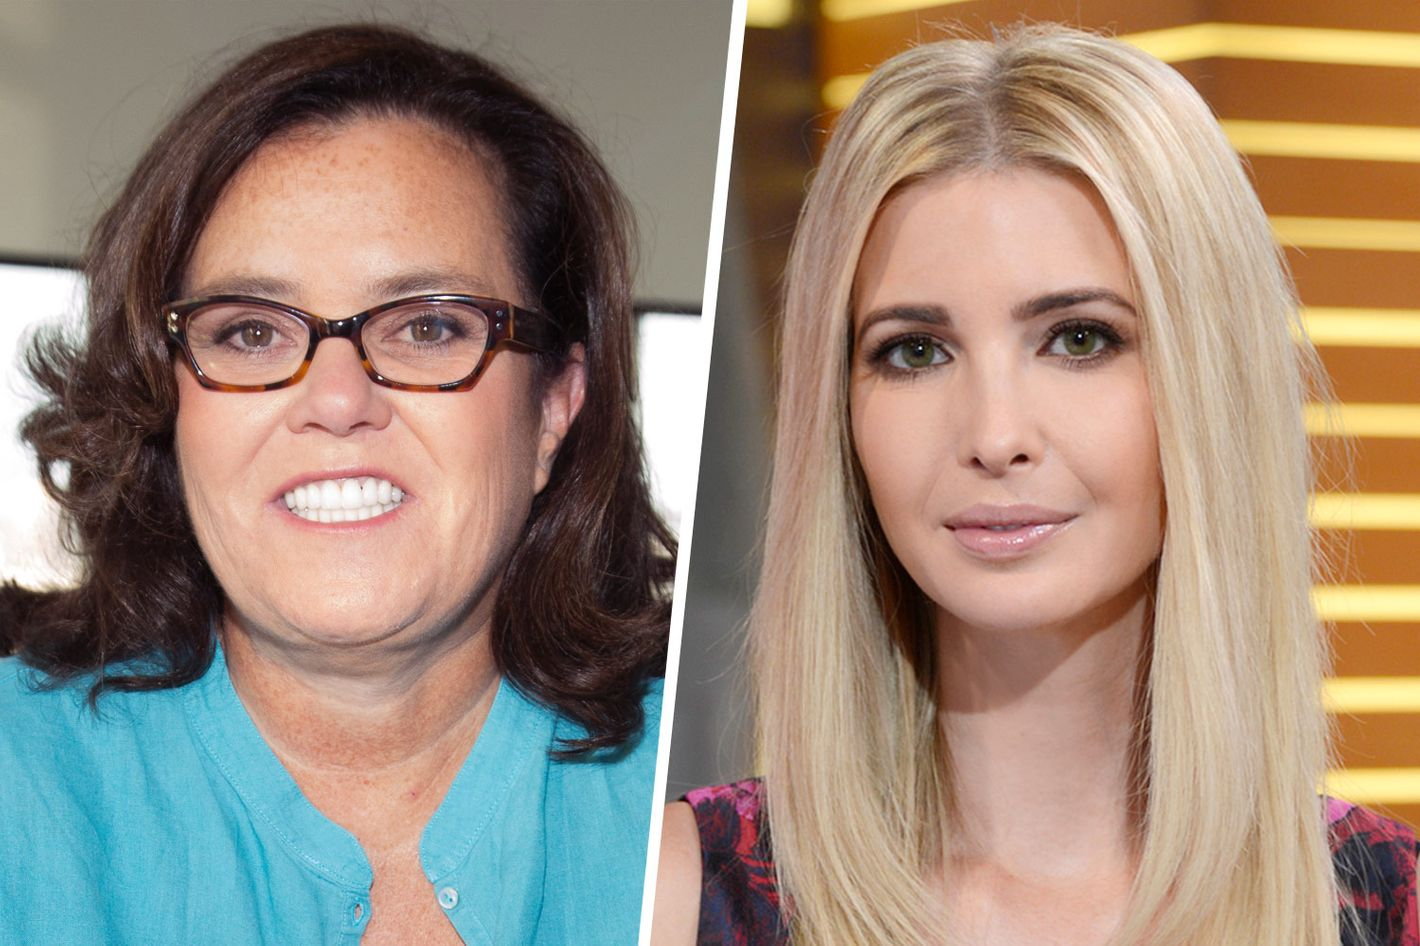 Rosie O'Donnell and Ivanka Trump meet face-to-face in NYC